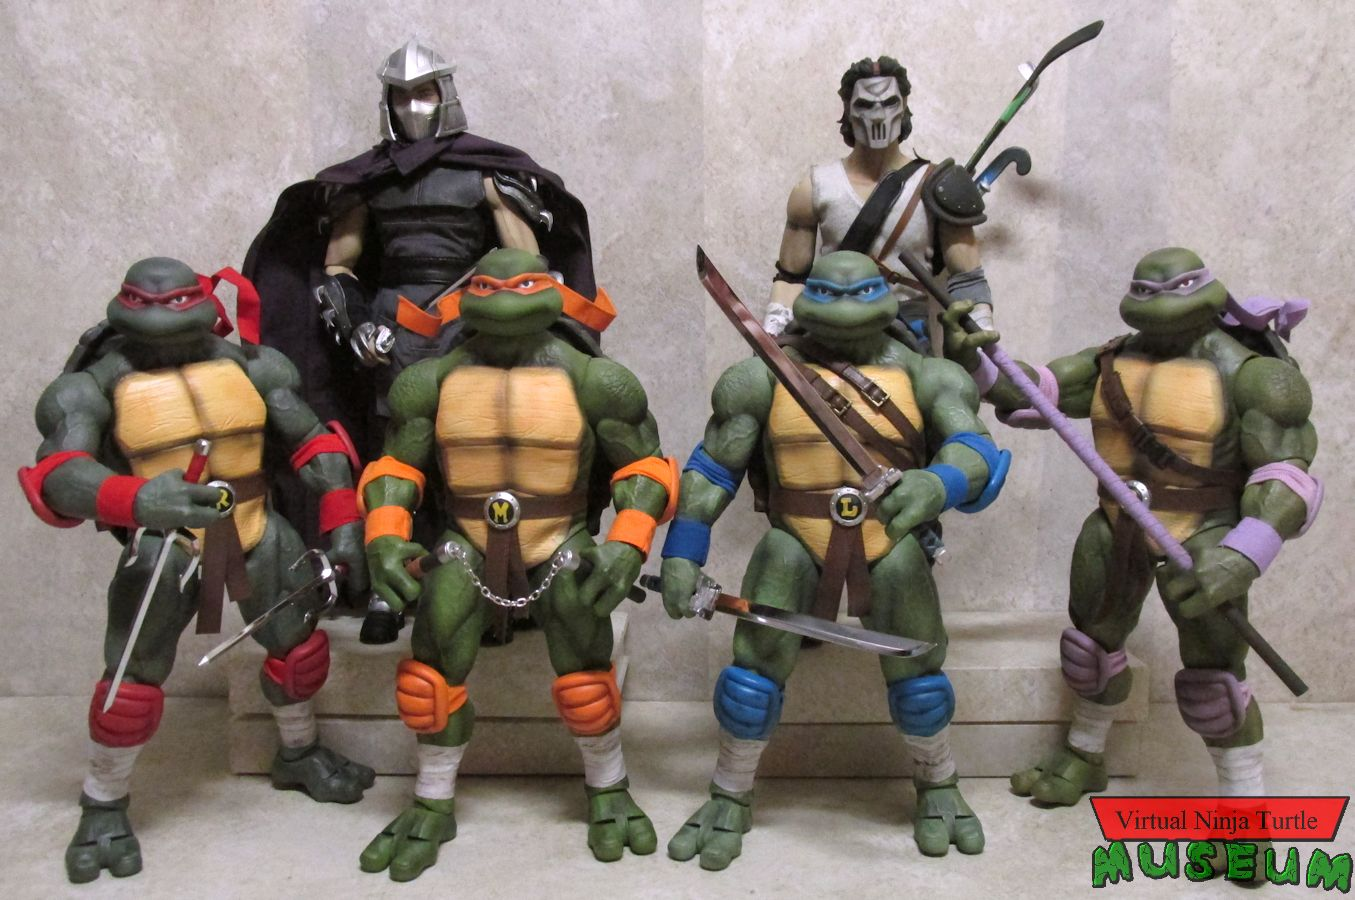 dreamex 1 6 scale ninja turtles casey jones and shredder review